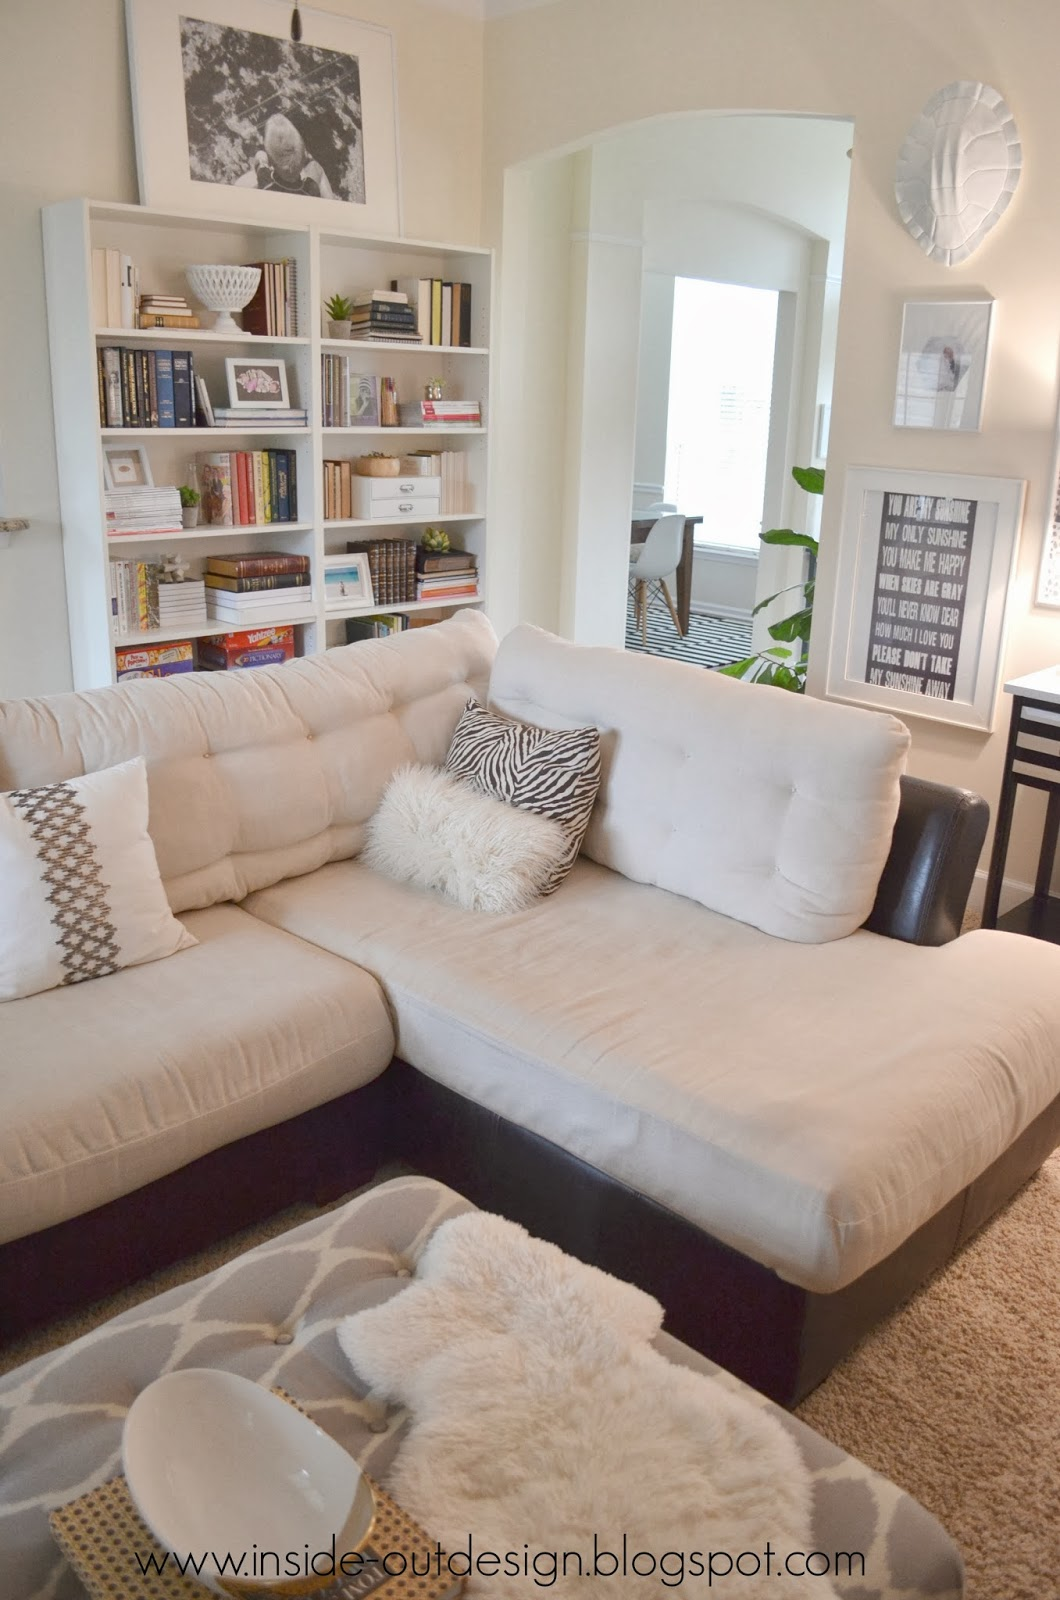 Inside out design living room bookcases Where to put a bookcase in a room